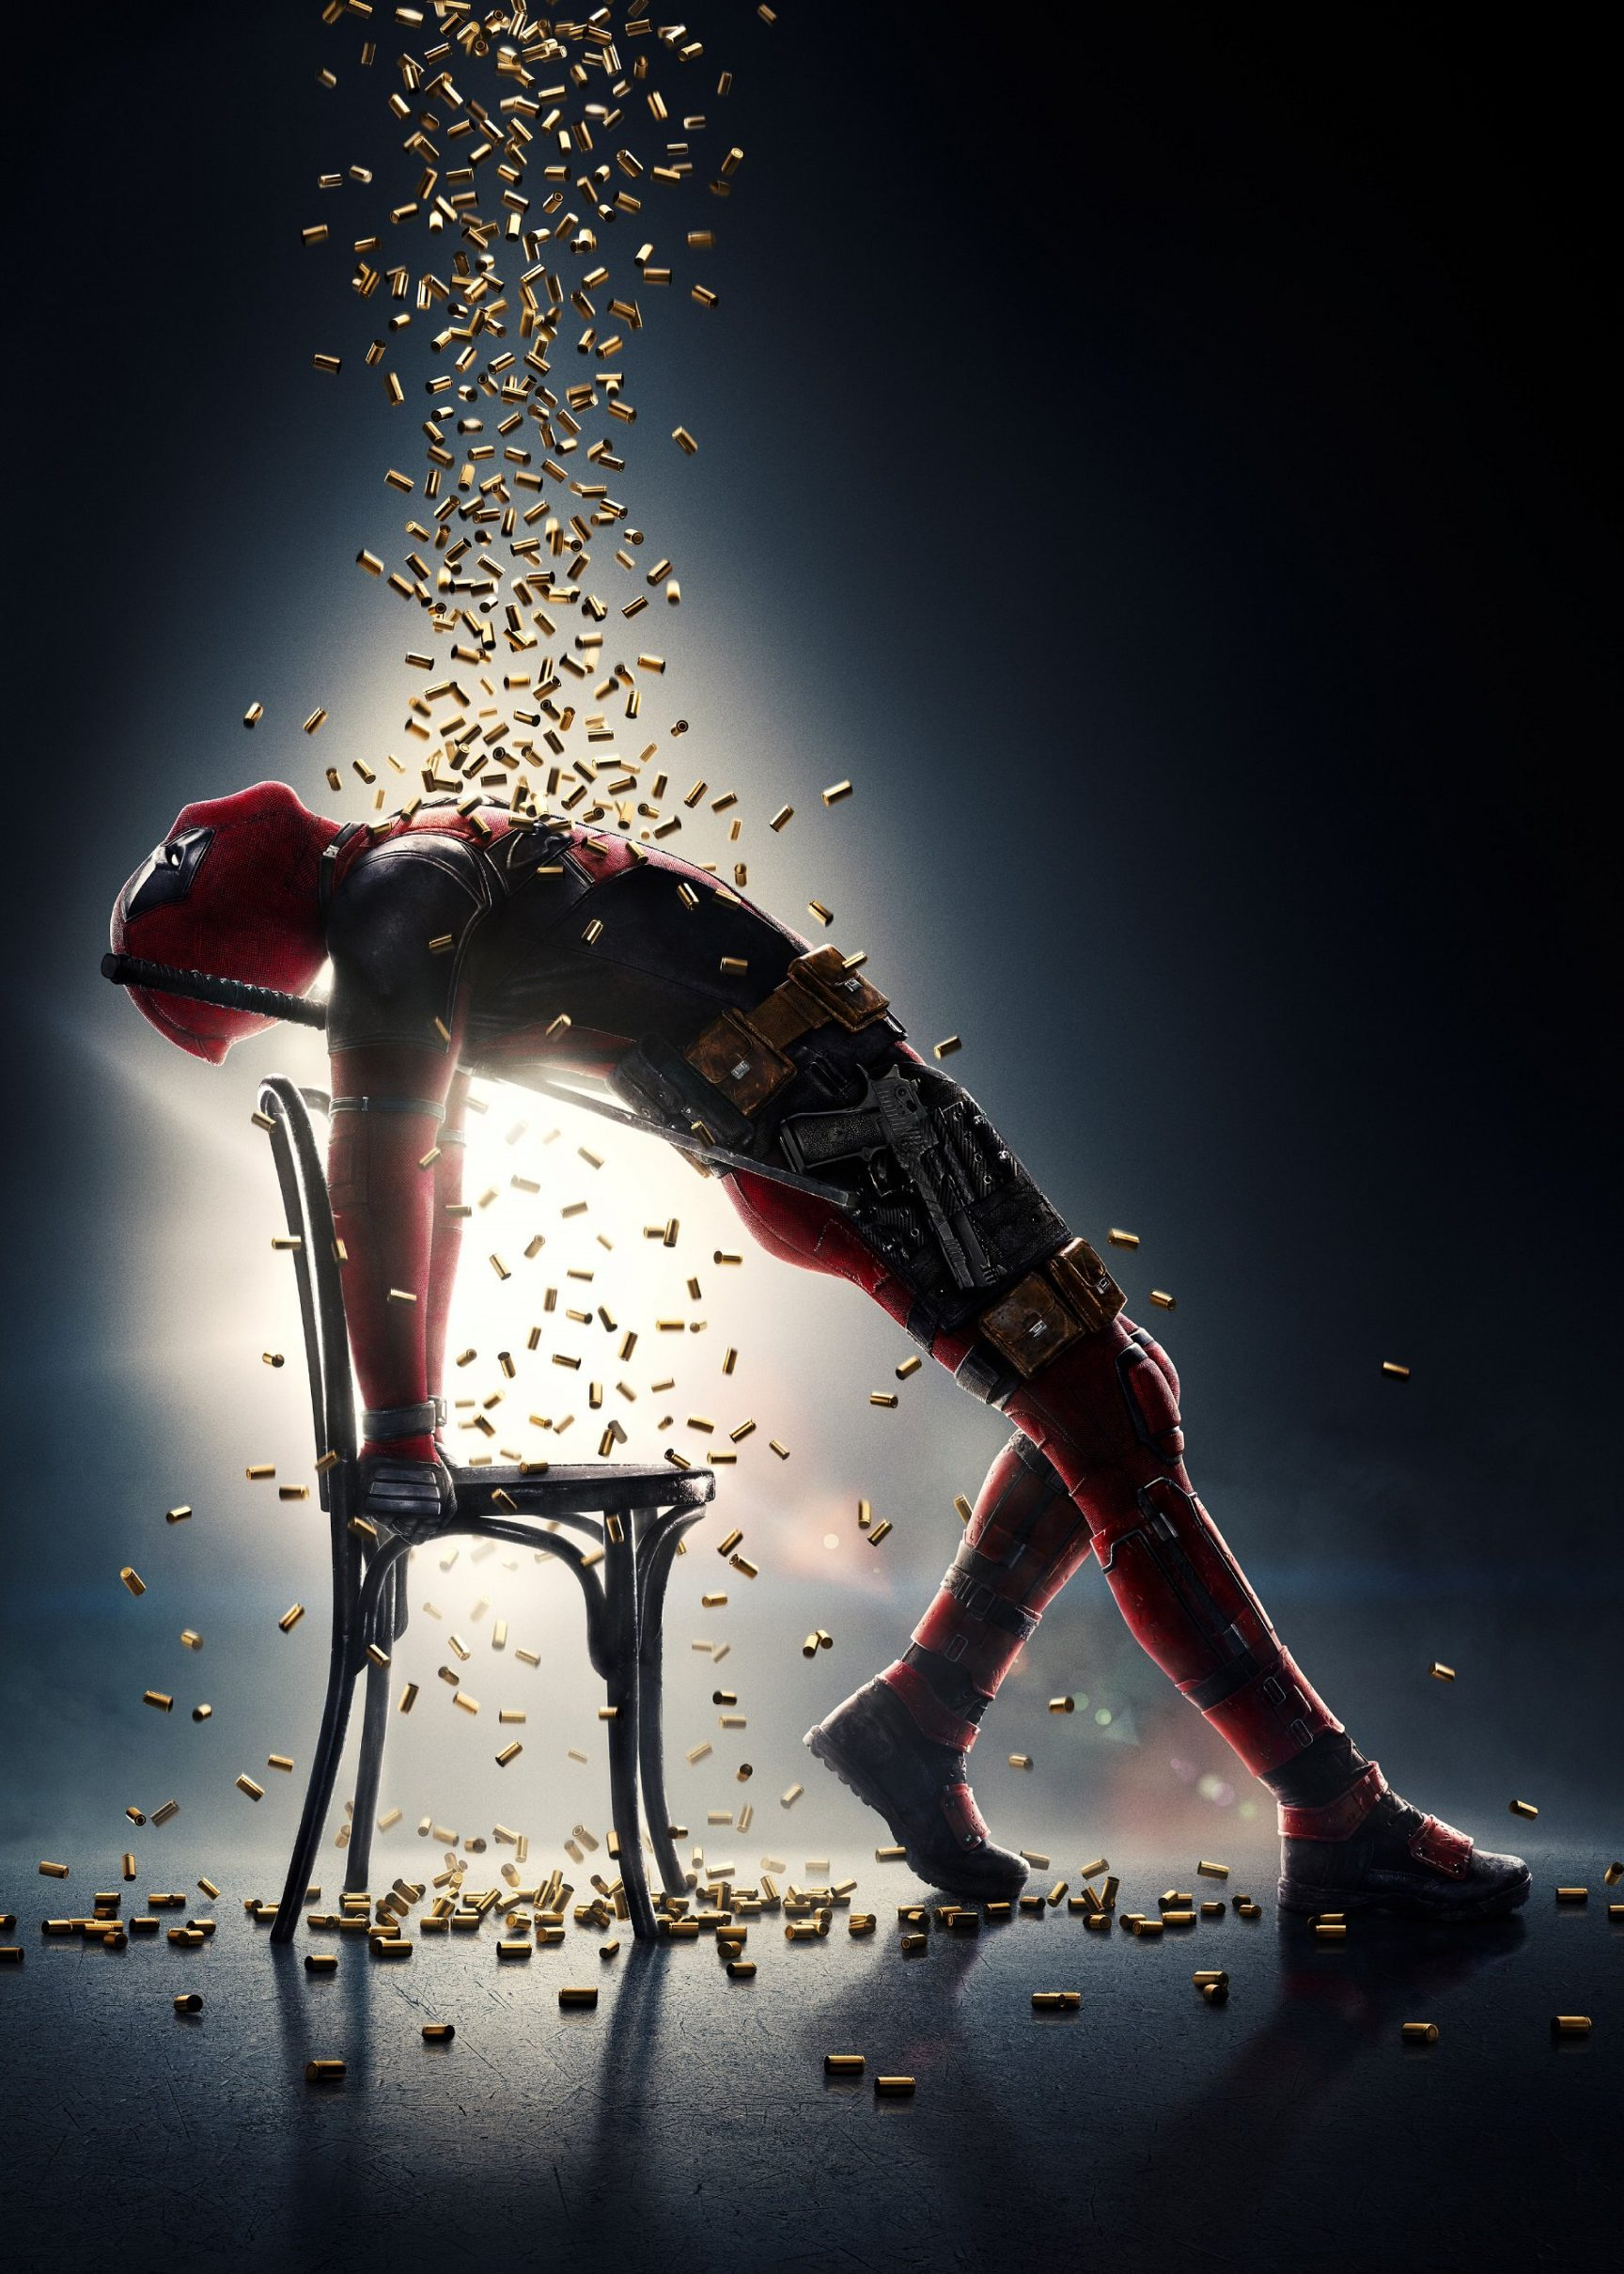 Deadpool 2 Review, Police ID Tech, Champions Airhorn